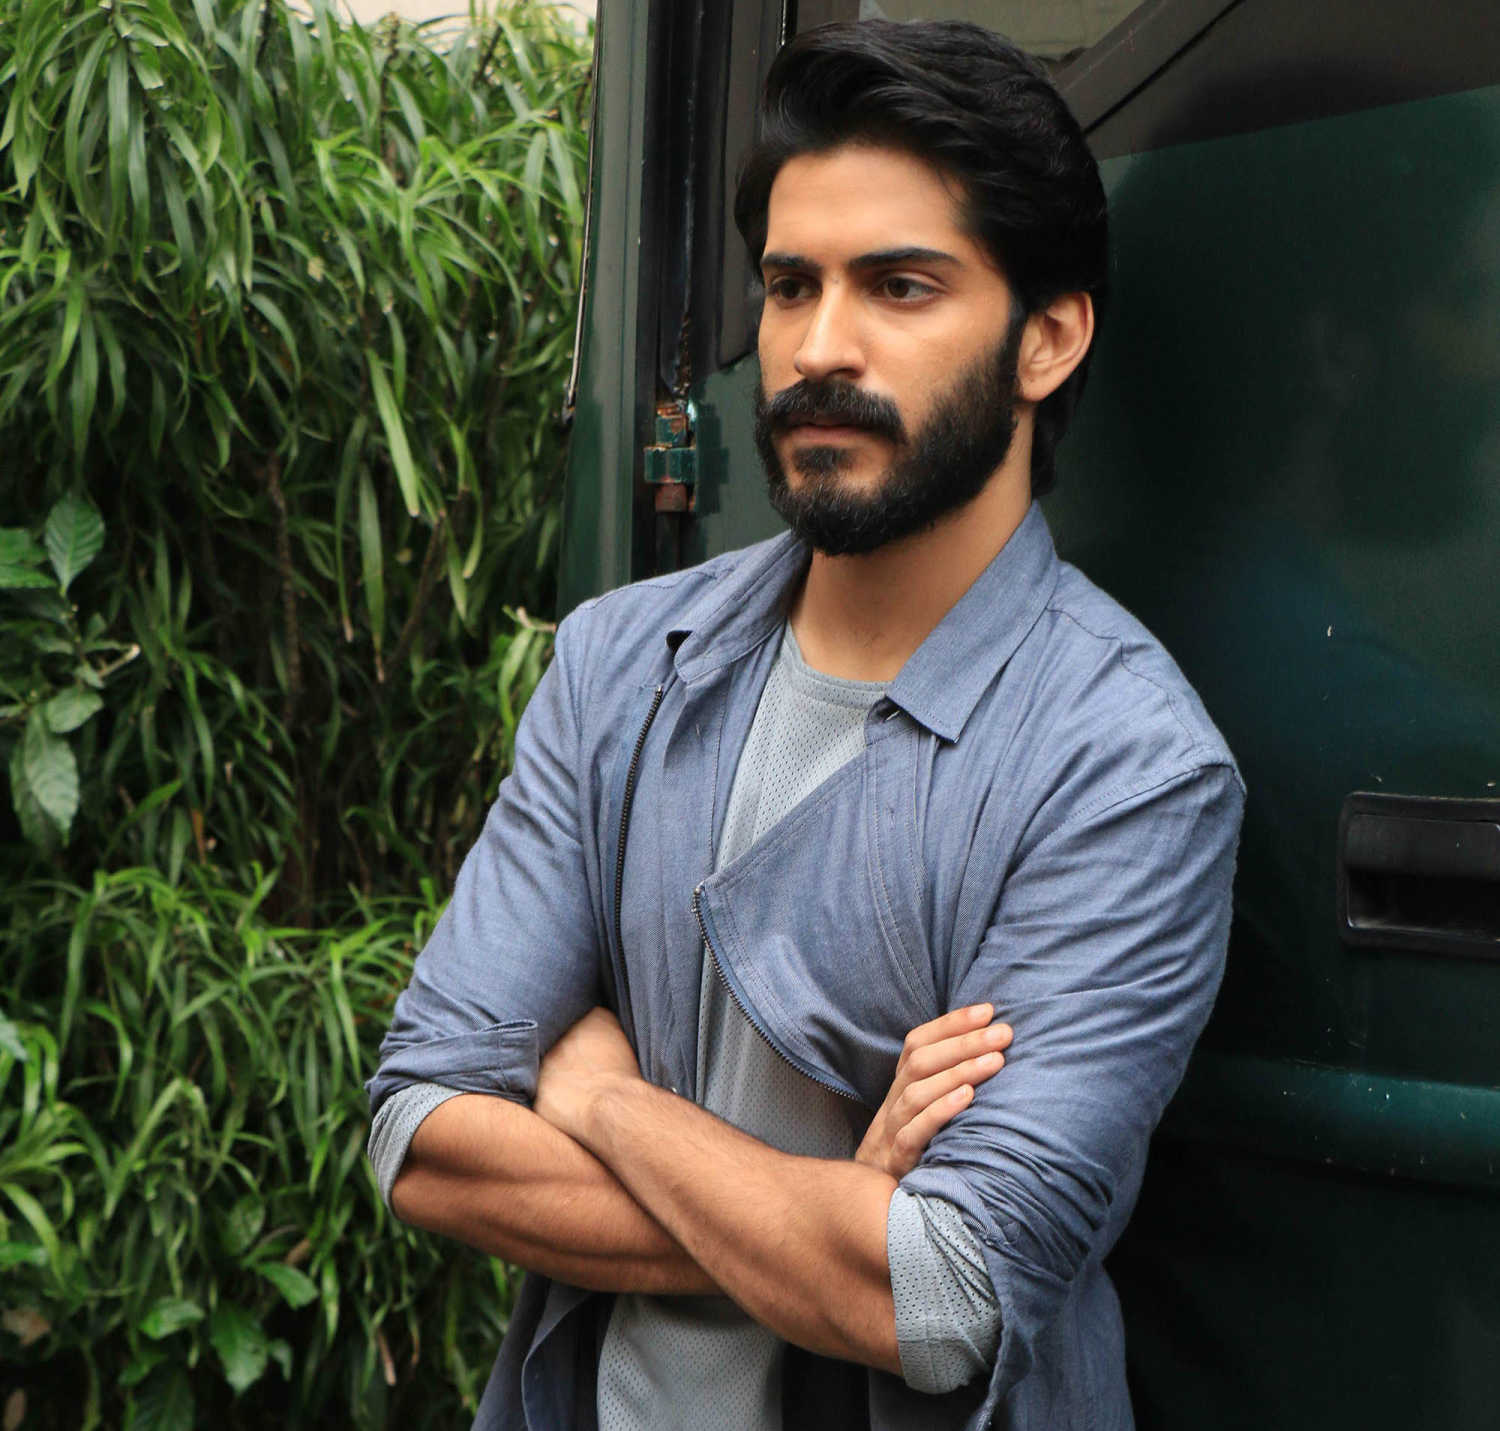 Watch: Harshvardhan Kapoor on how studying films in USA made him an actor